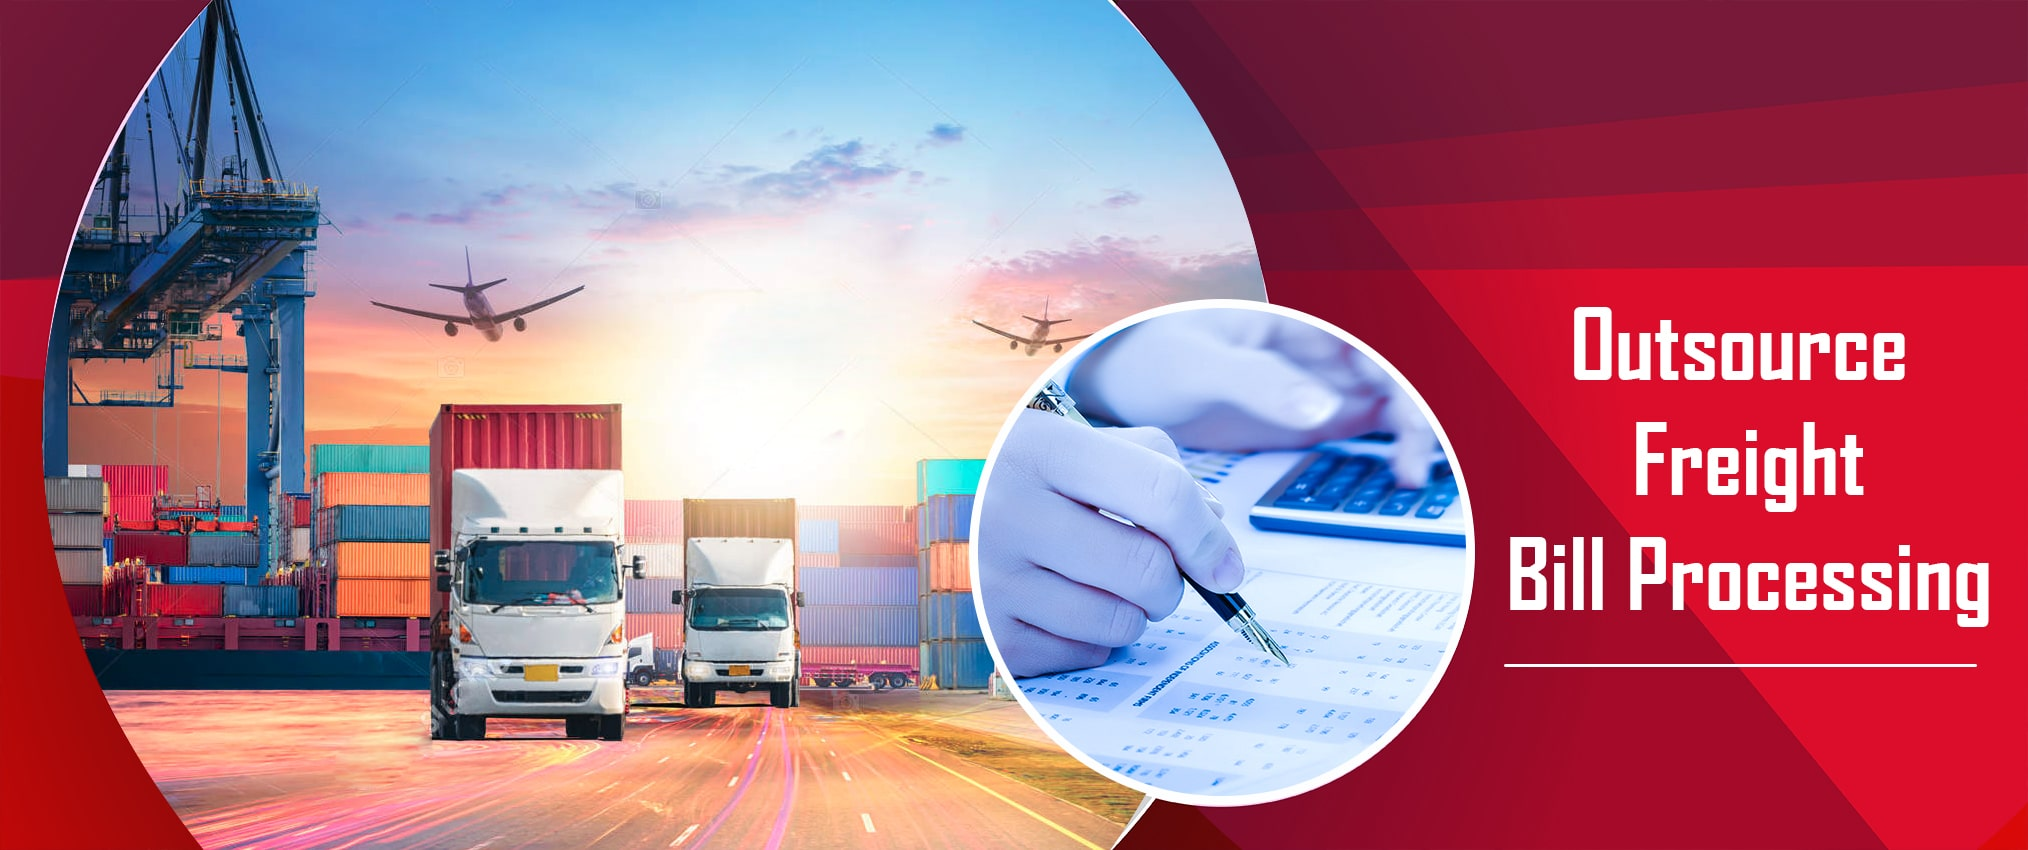 Outsource Freight Bill Processing